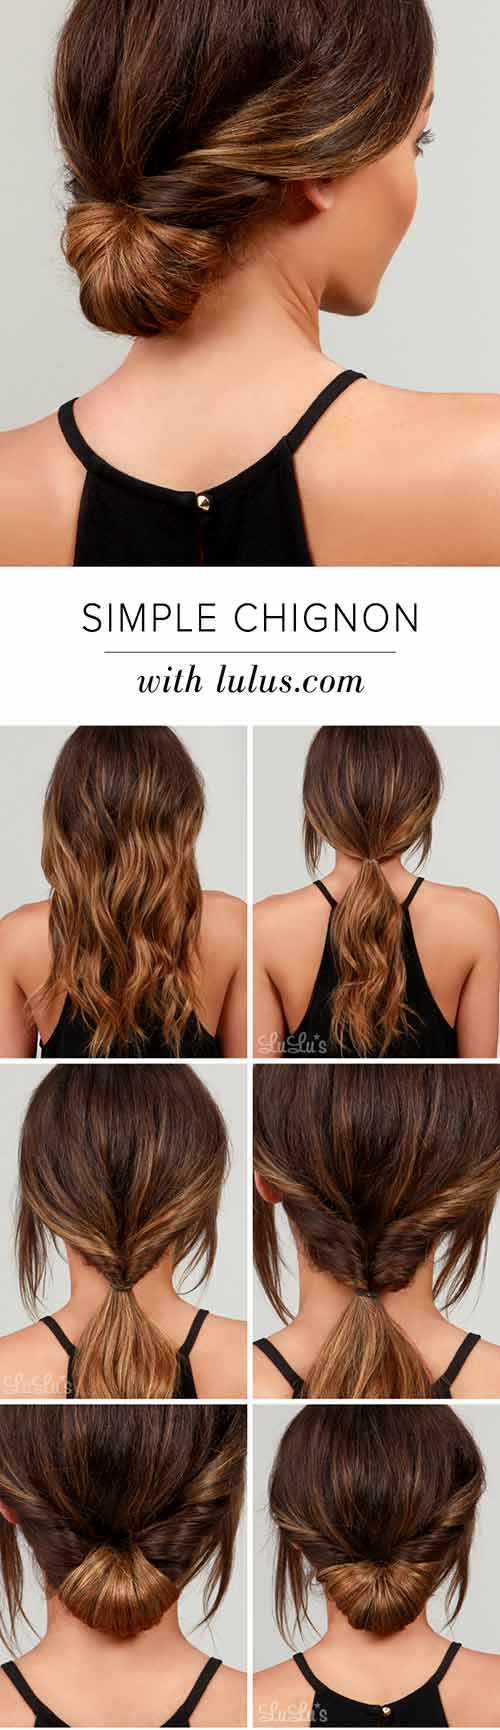 Simple-Chignon hairstyle